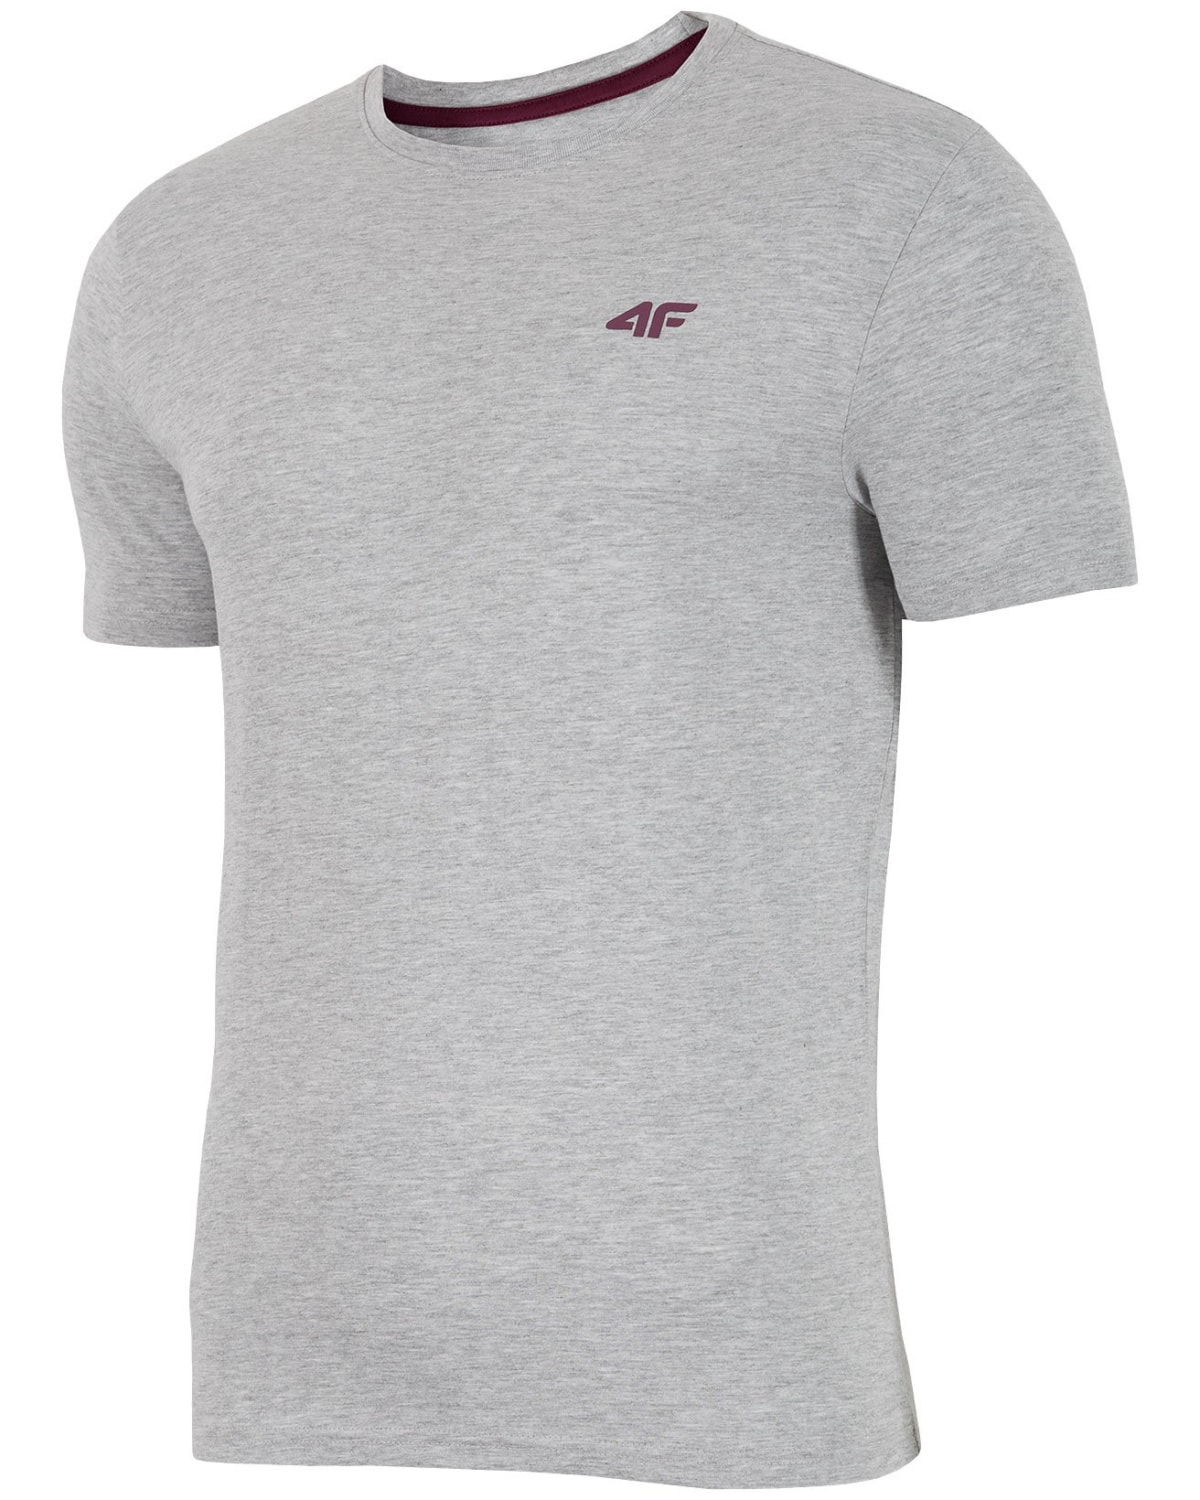 4F Man's T-Shirt - Light Grey Melange